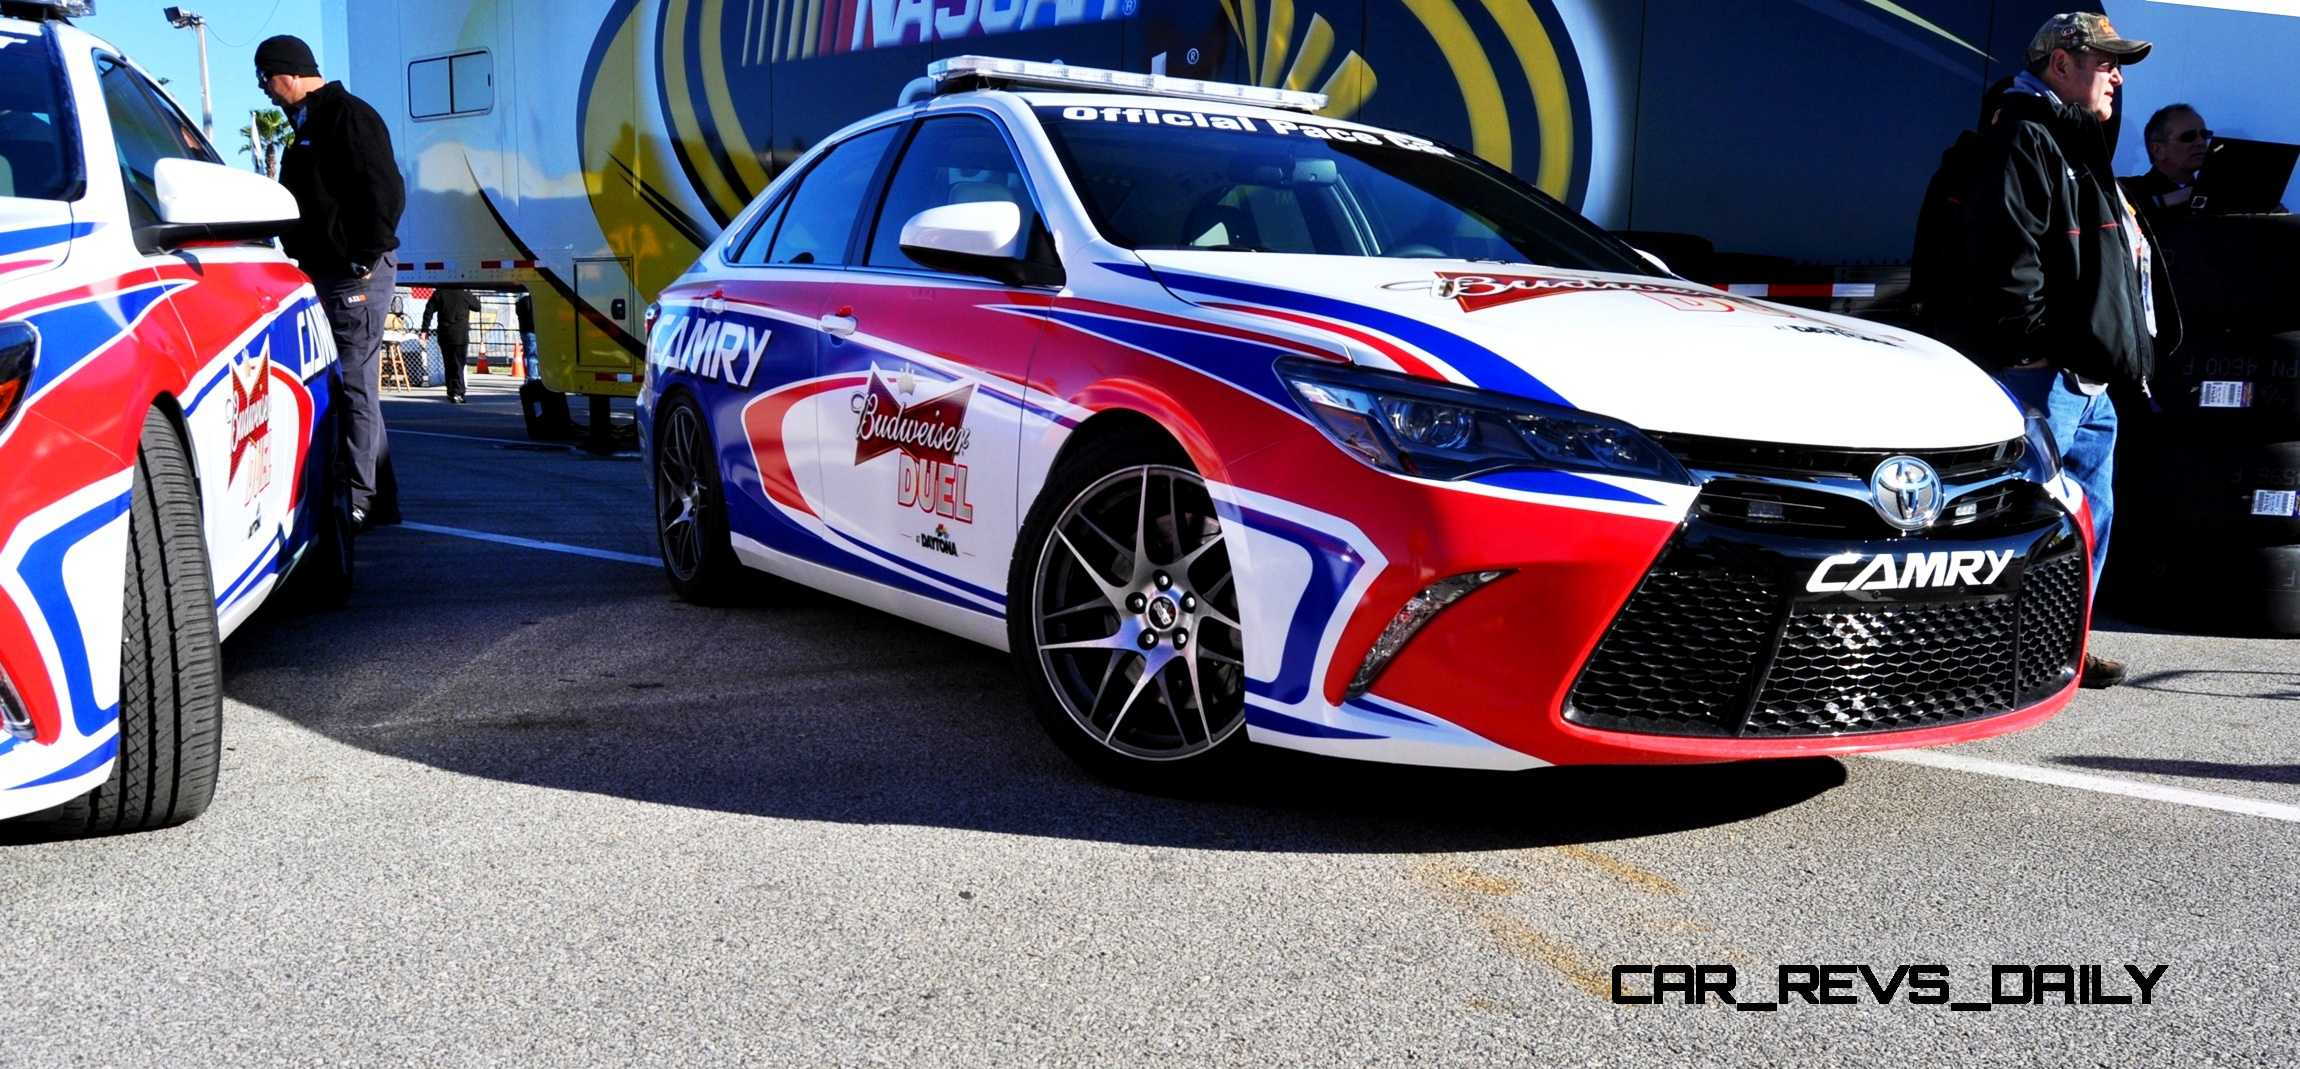 2017 Toyota Camry Daytona 500 Official Pace Car 32